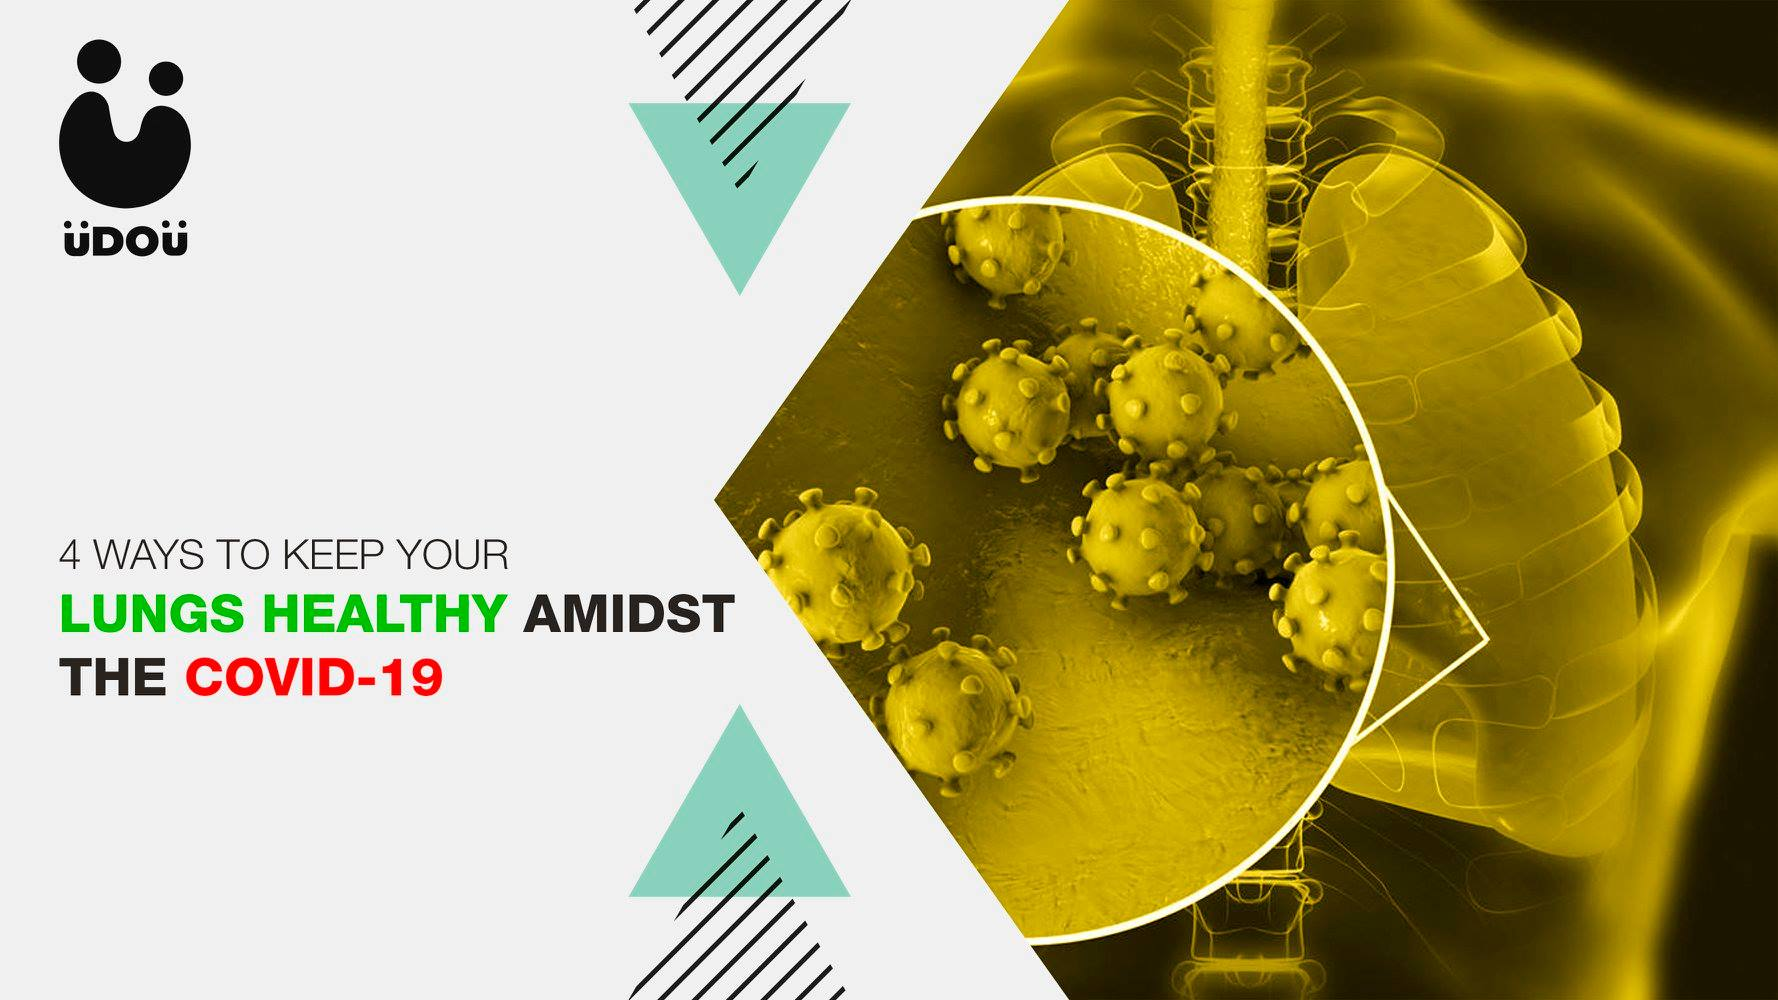 Ways to Keep Your Lungs Healthy Amidst the COVID-19